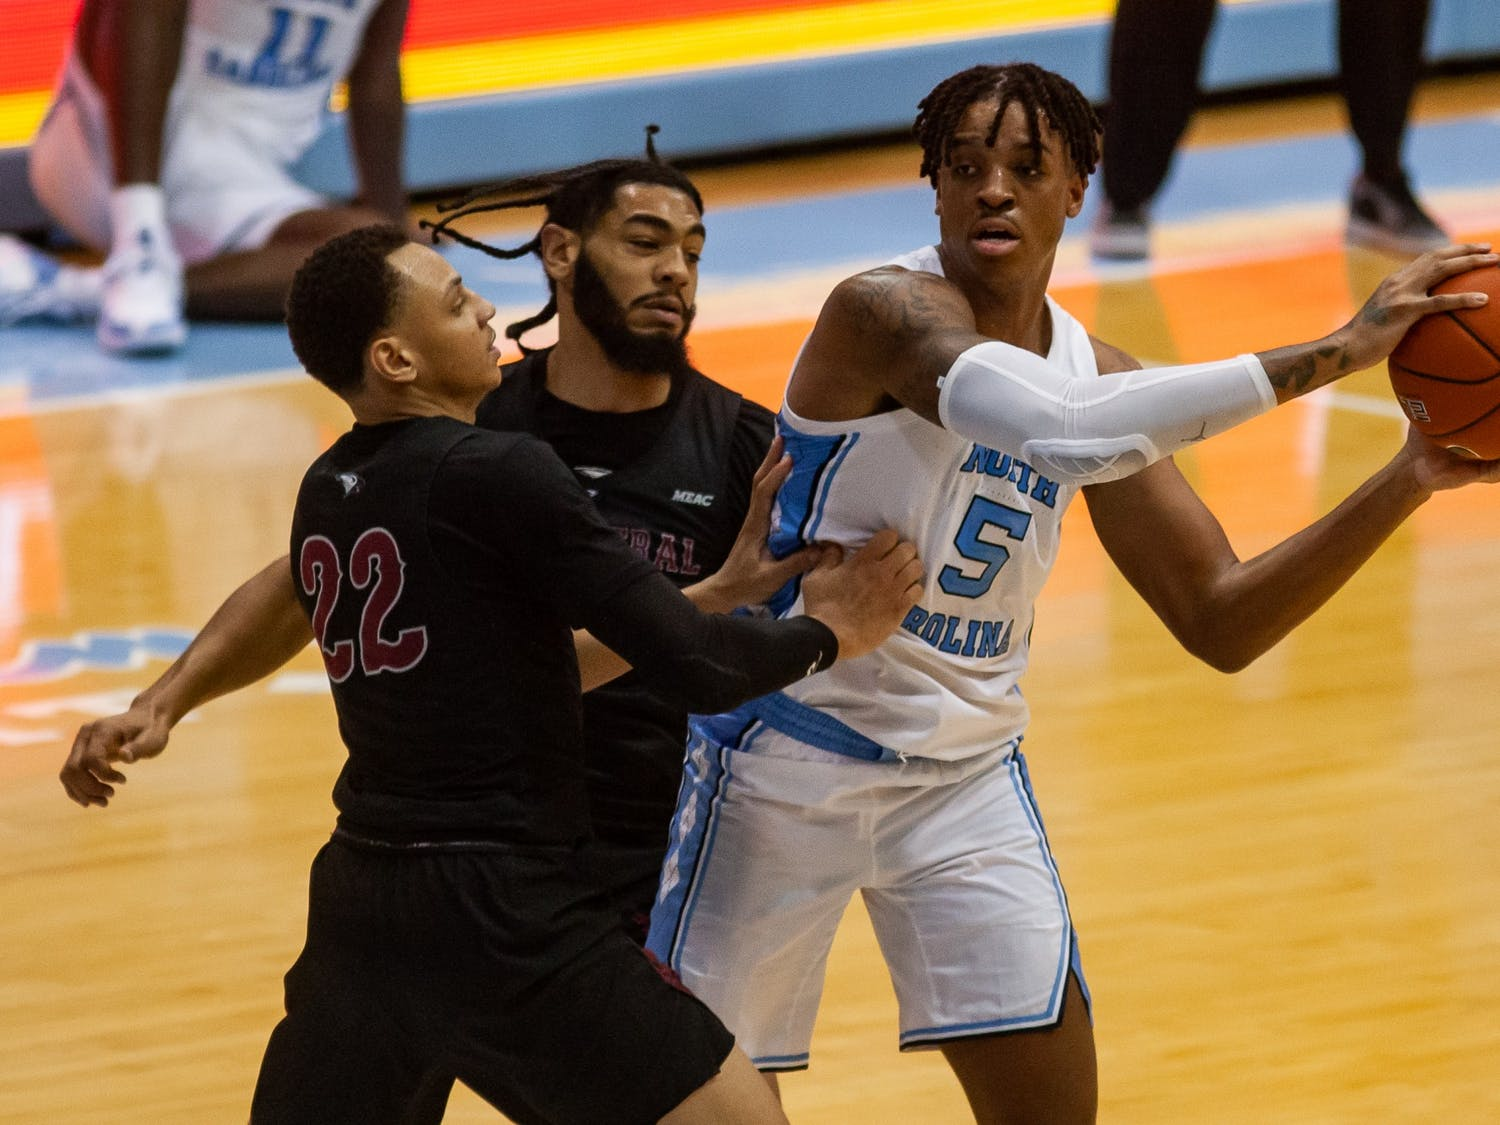 UNC sophomore center Armando Bacot (5) looks to make a pass around NCCU redshirt senior guard C.J. Keyser (22) and senior guard Deven Palmer (5) during a game in the Smith Center on Saturday, Dec. 12, 2020. UNC beat N.C. Central 73-67